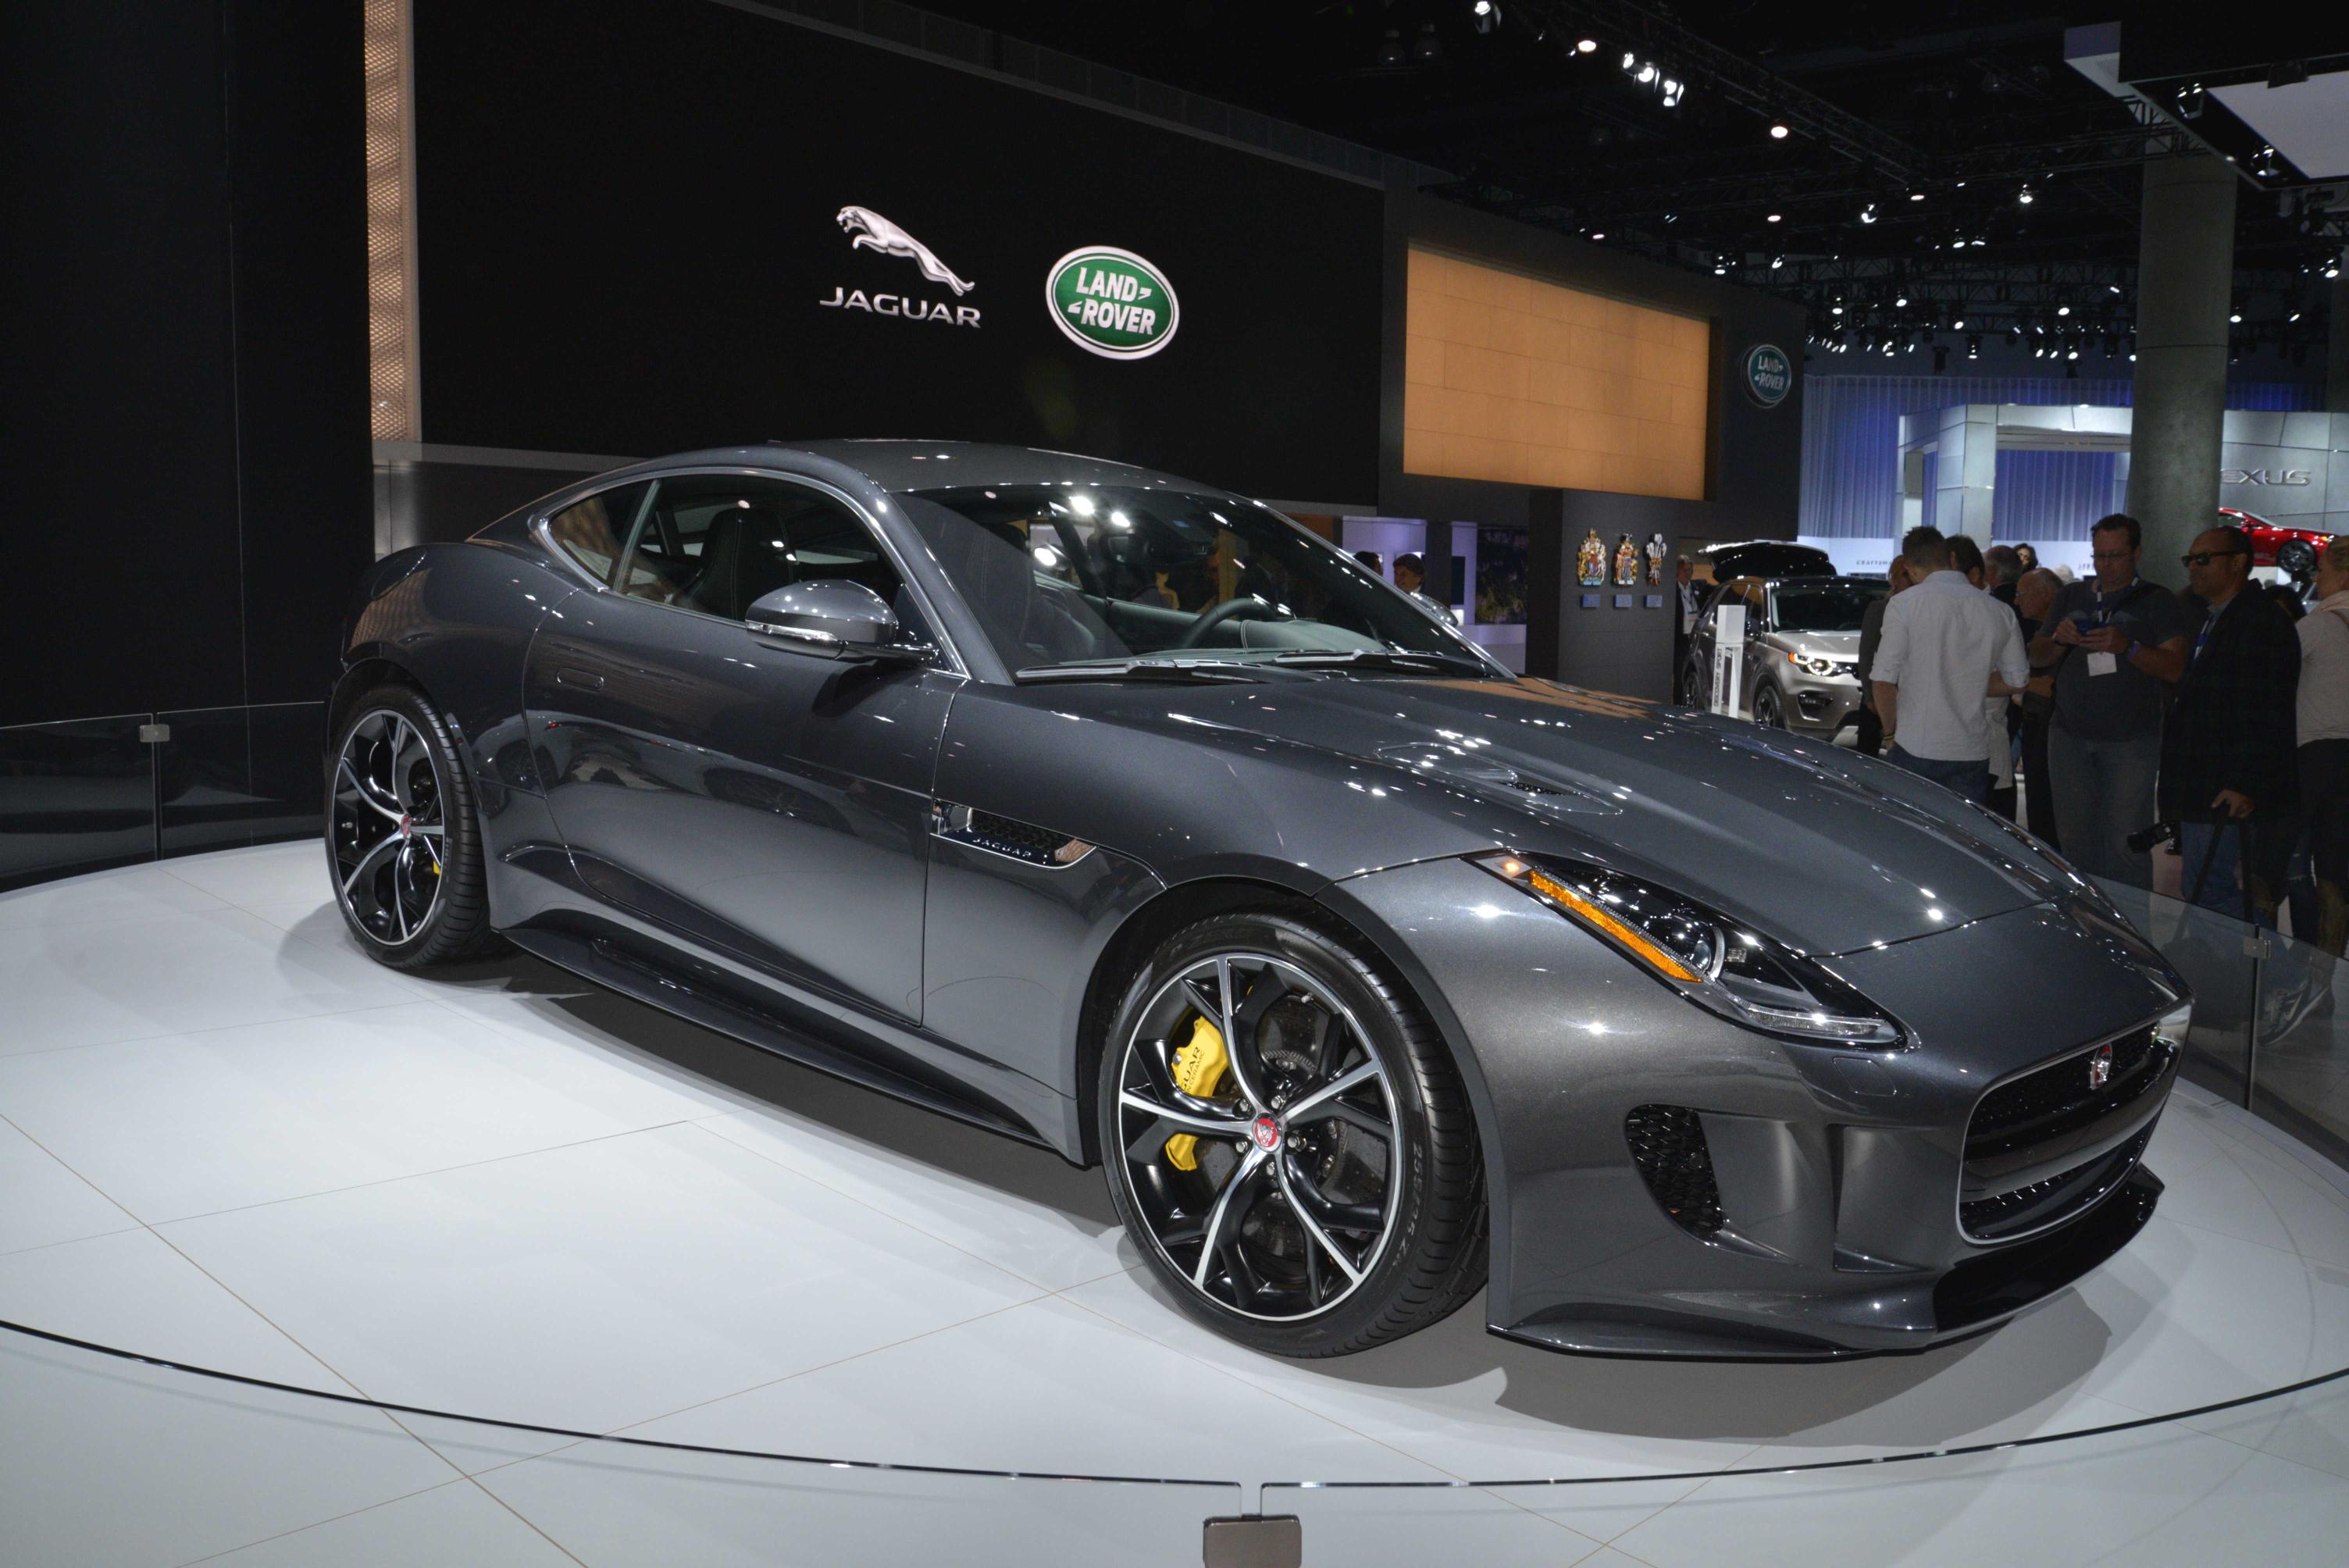 Jaguar F Type Debuts In La With Awd And Manual Gearbox Video Photo Gallery on Jaguar S Type V6 Engine